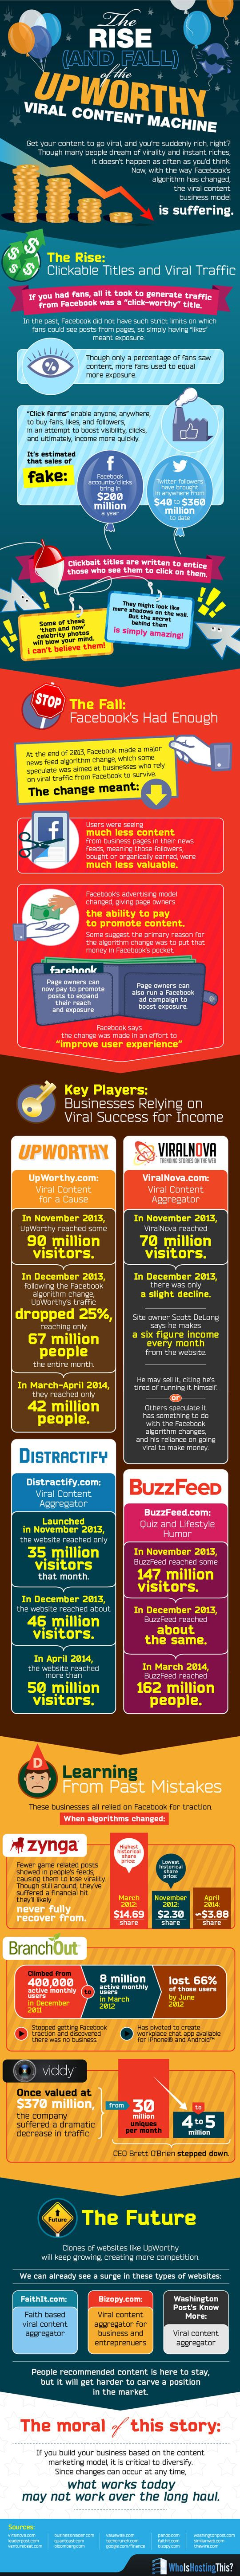 Facebook Cracks Down On Viral Marketing Infographic http://socialmediarevolver.com/facebook-cracks-down-viral-marketing-infographic/